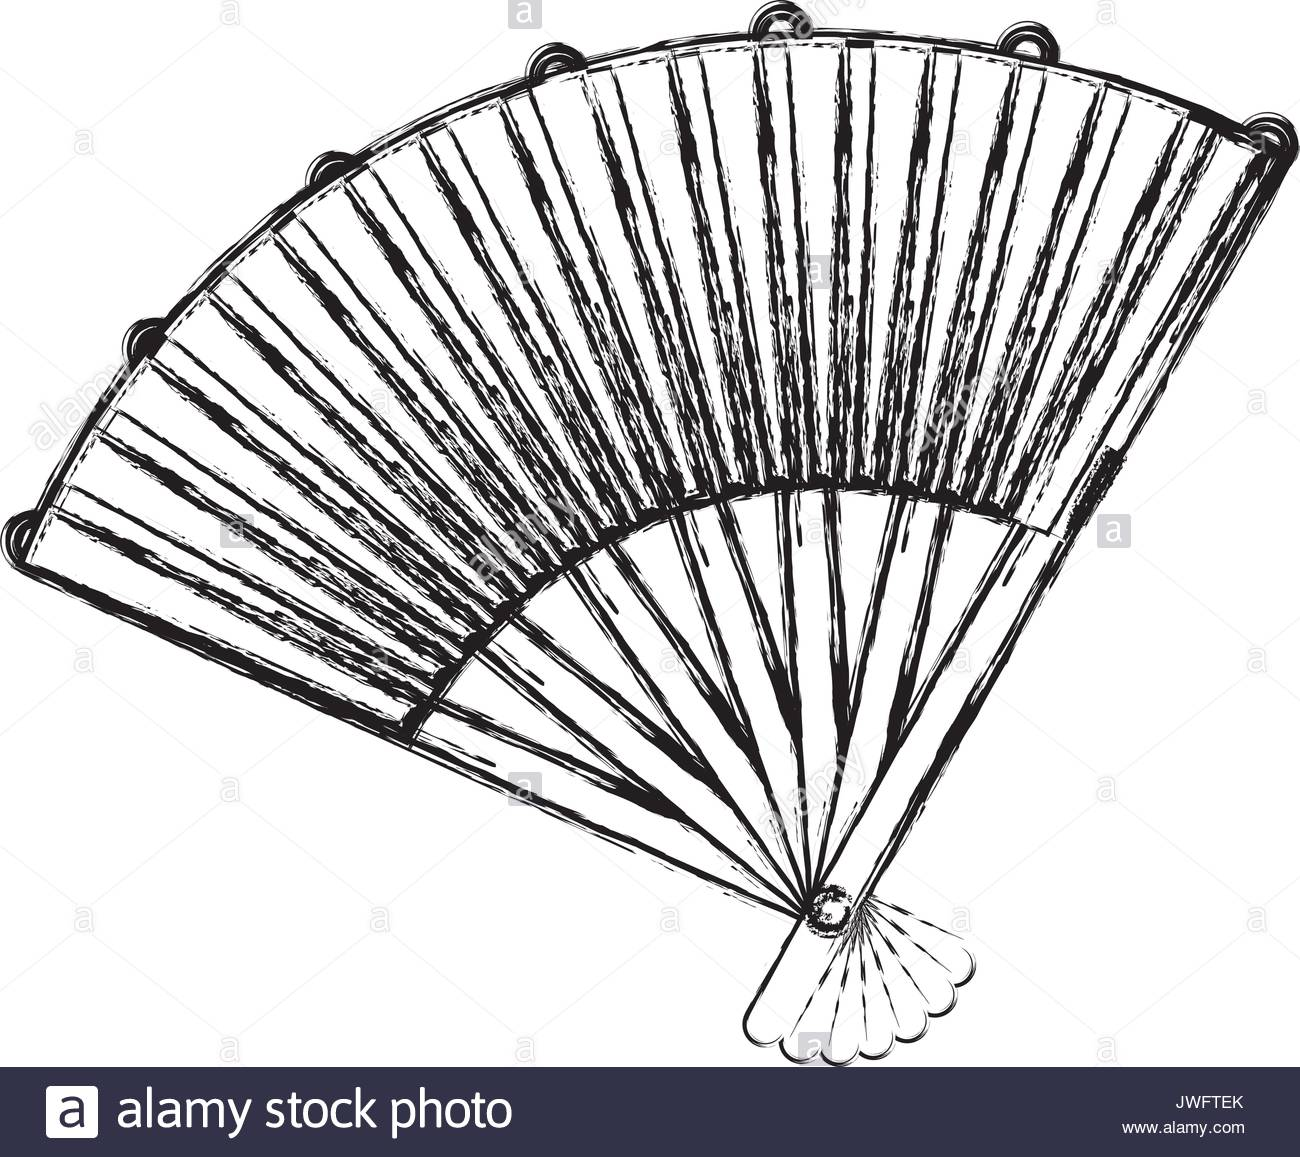 1300x1157 Chinese Fan Hand Cool Art Stock Photos Amp Chinese Fan Hand Cool Art